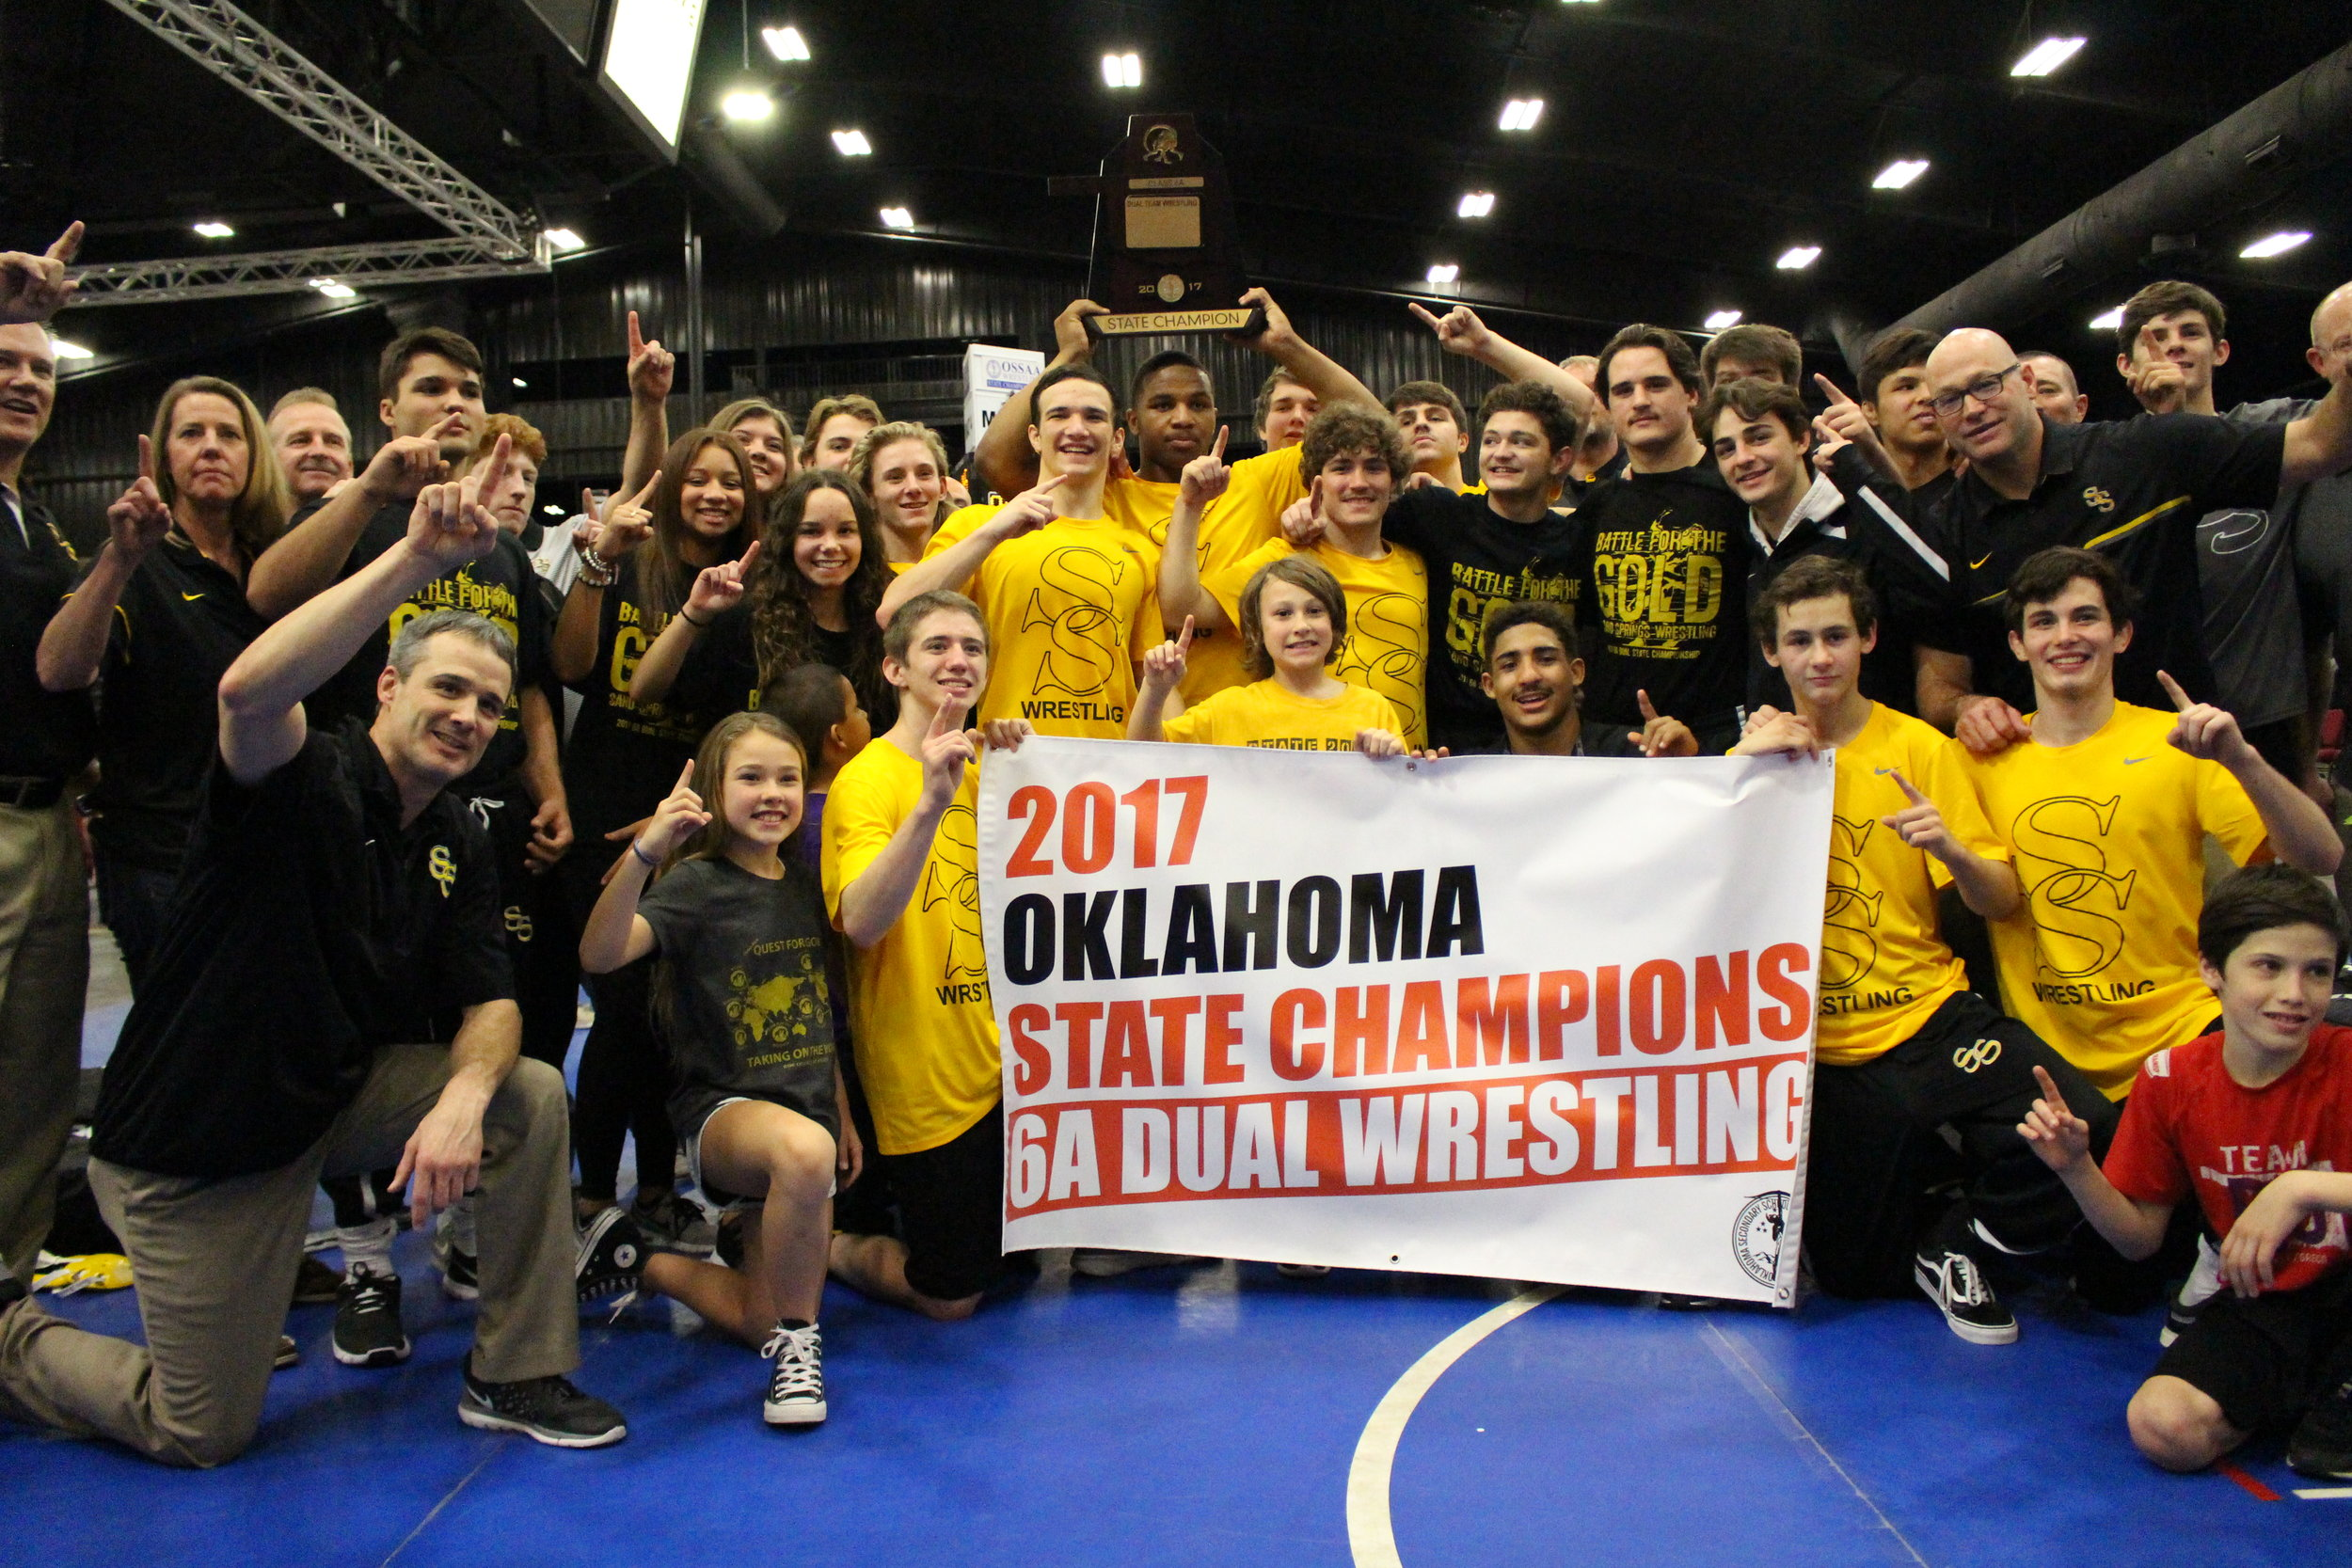 CPHS Head Coach Kelly Smith led the Sandites to their first ever Dual State Championship in 2017, and first school State Title in any sport since 1994. (Photo: Scott Emigh).